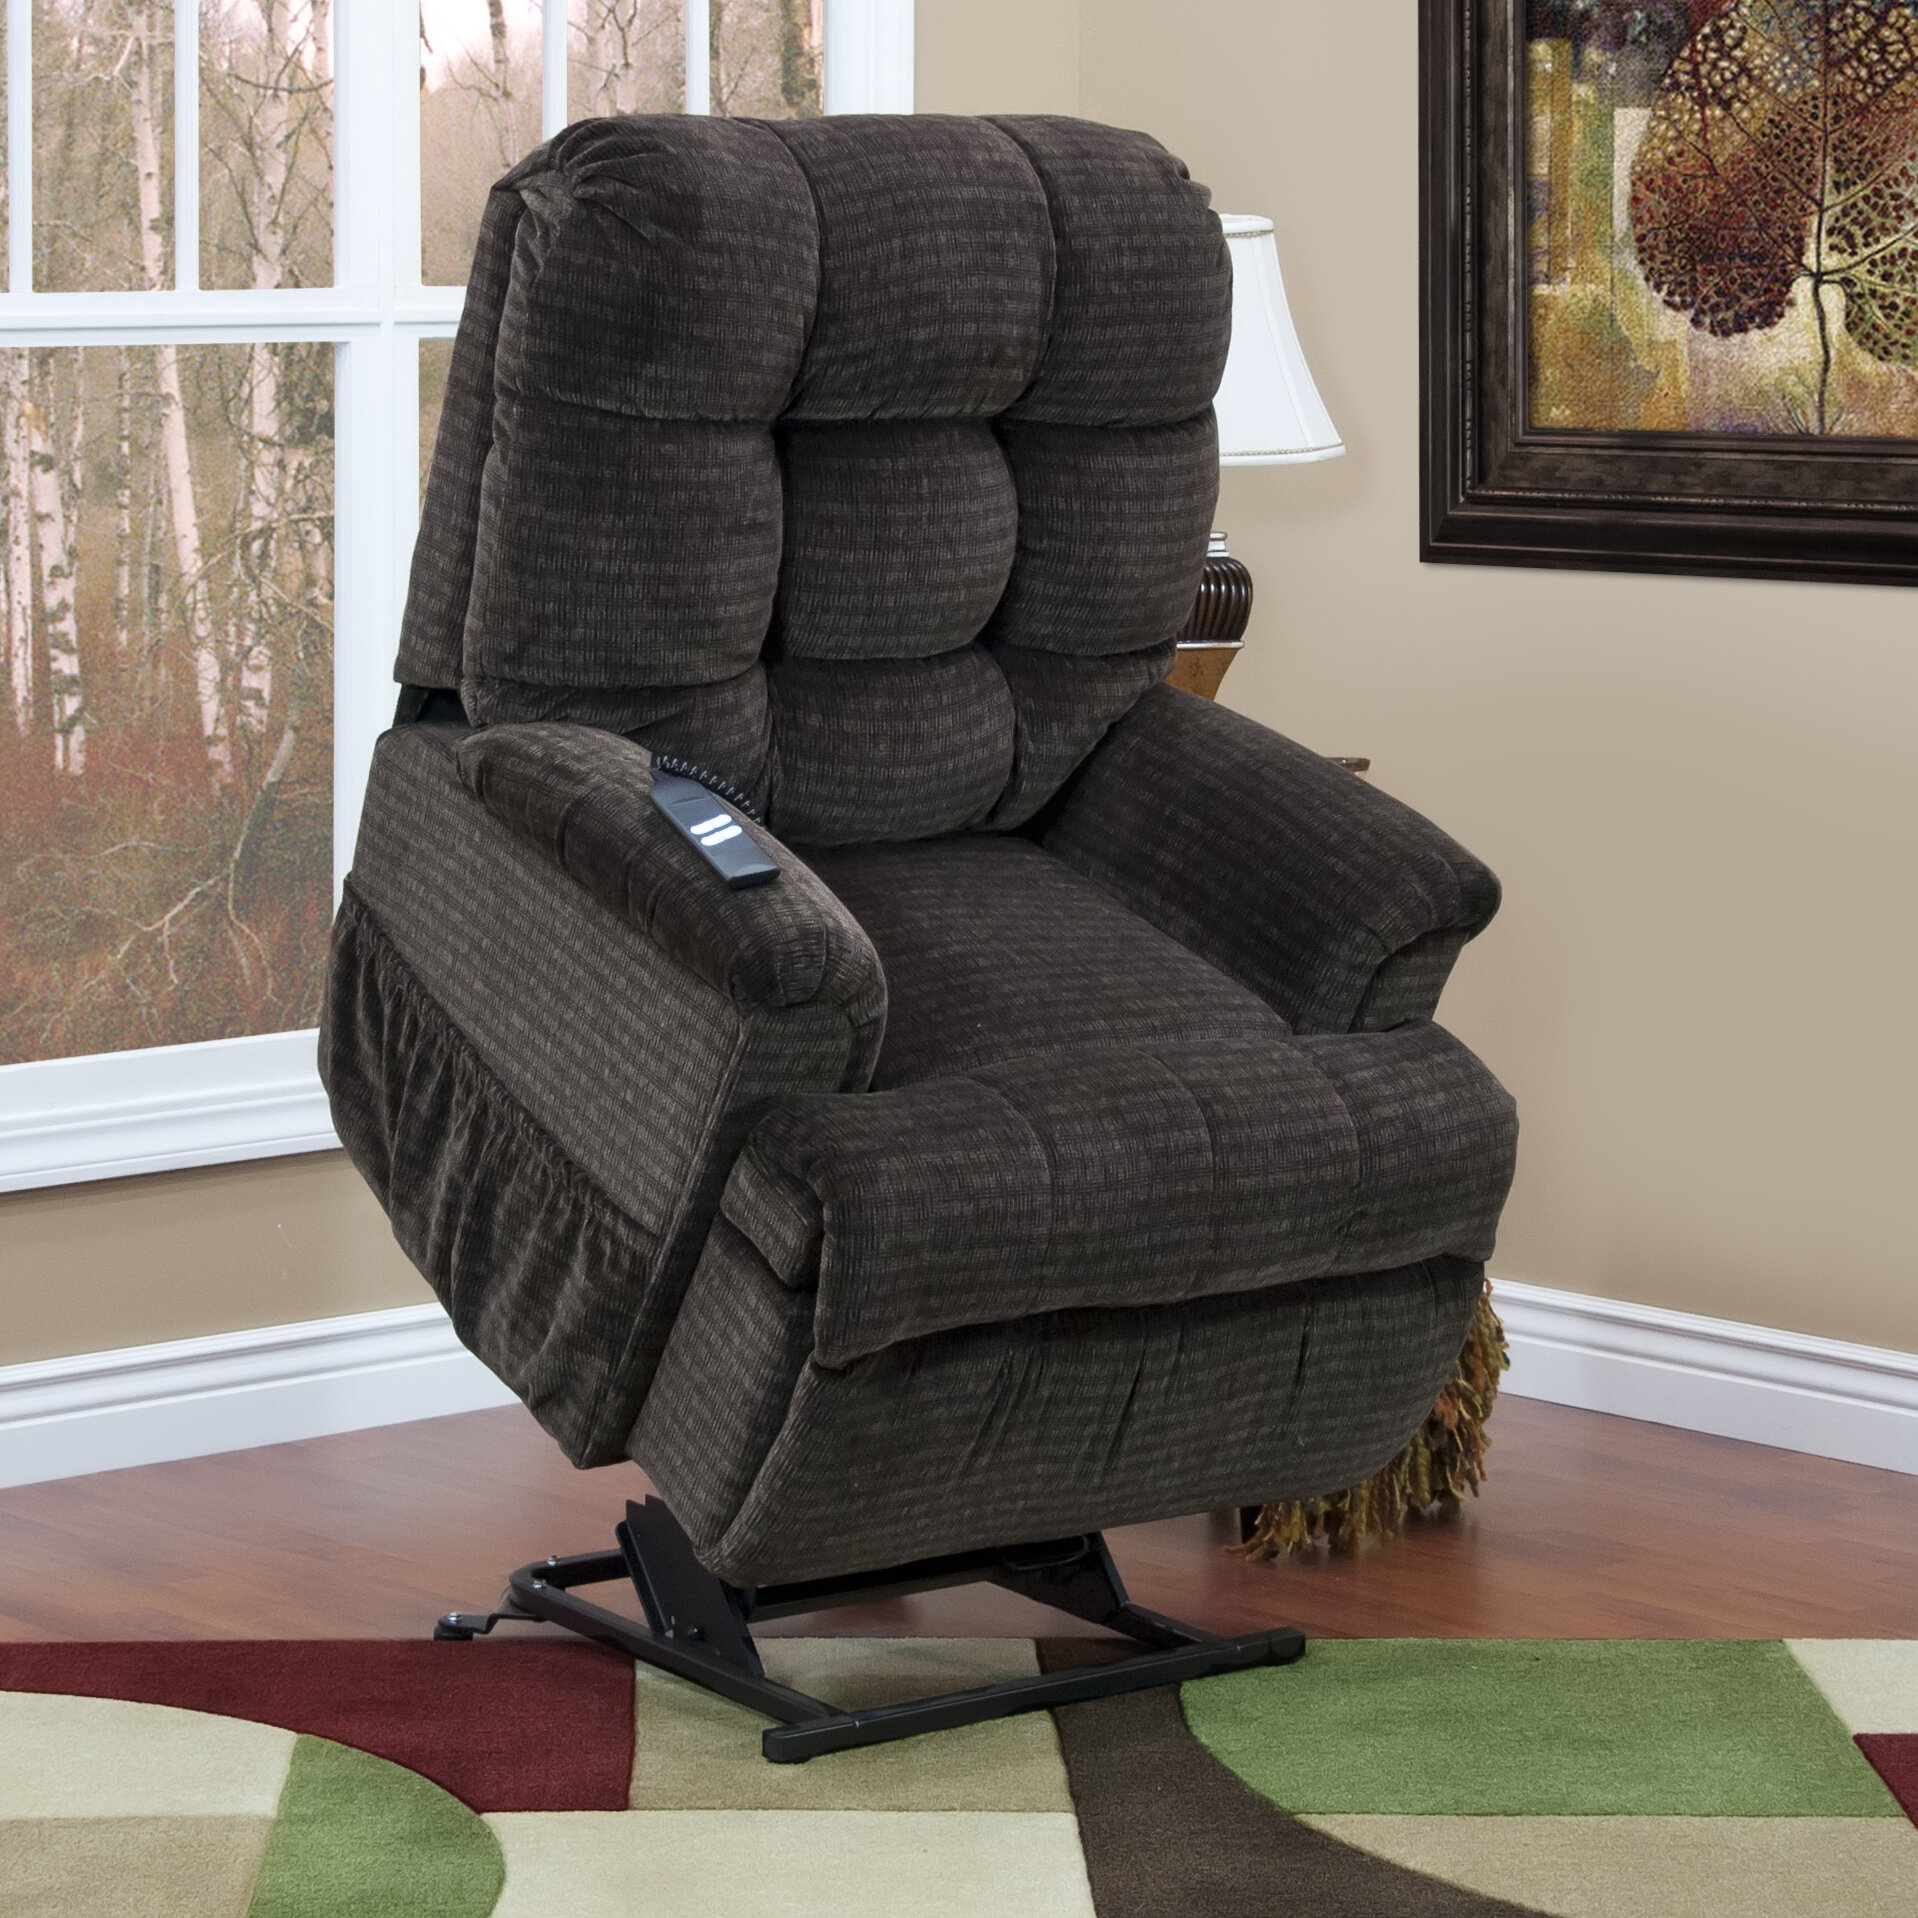 Med Lift Chairs Reviews - Foter